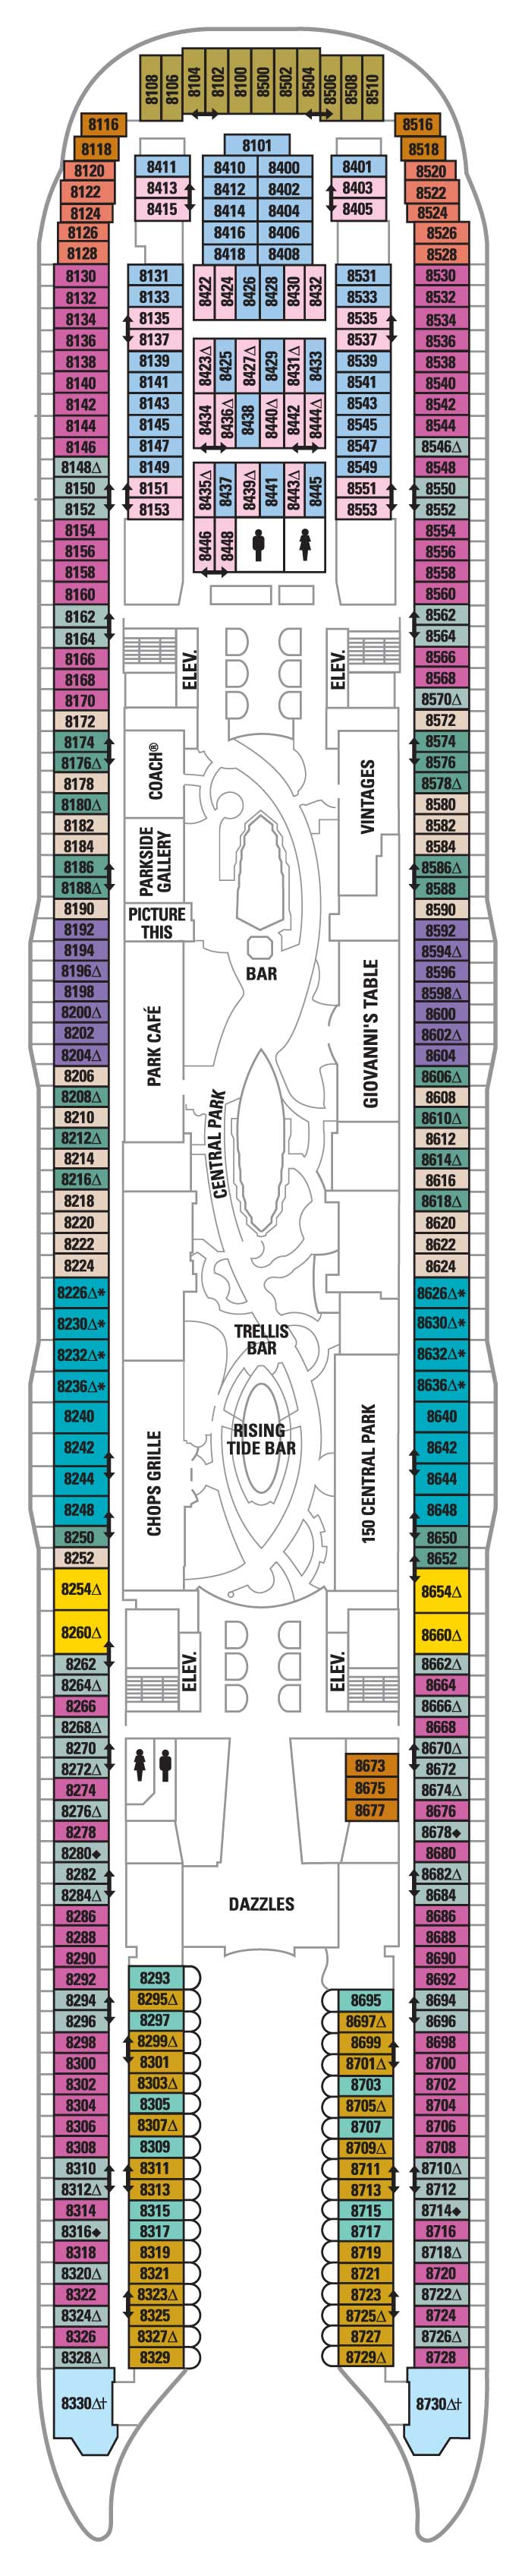 Deck 8  Allure of the Seas Deck Plans  Royal Caribbean Blog